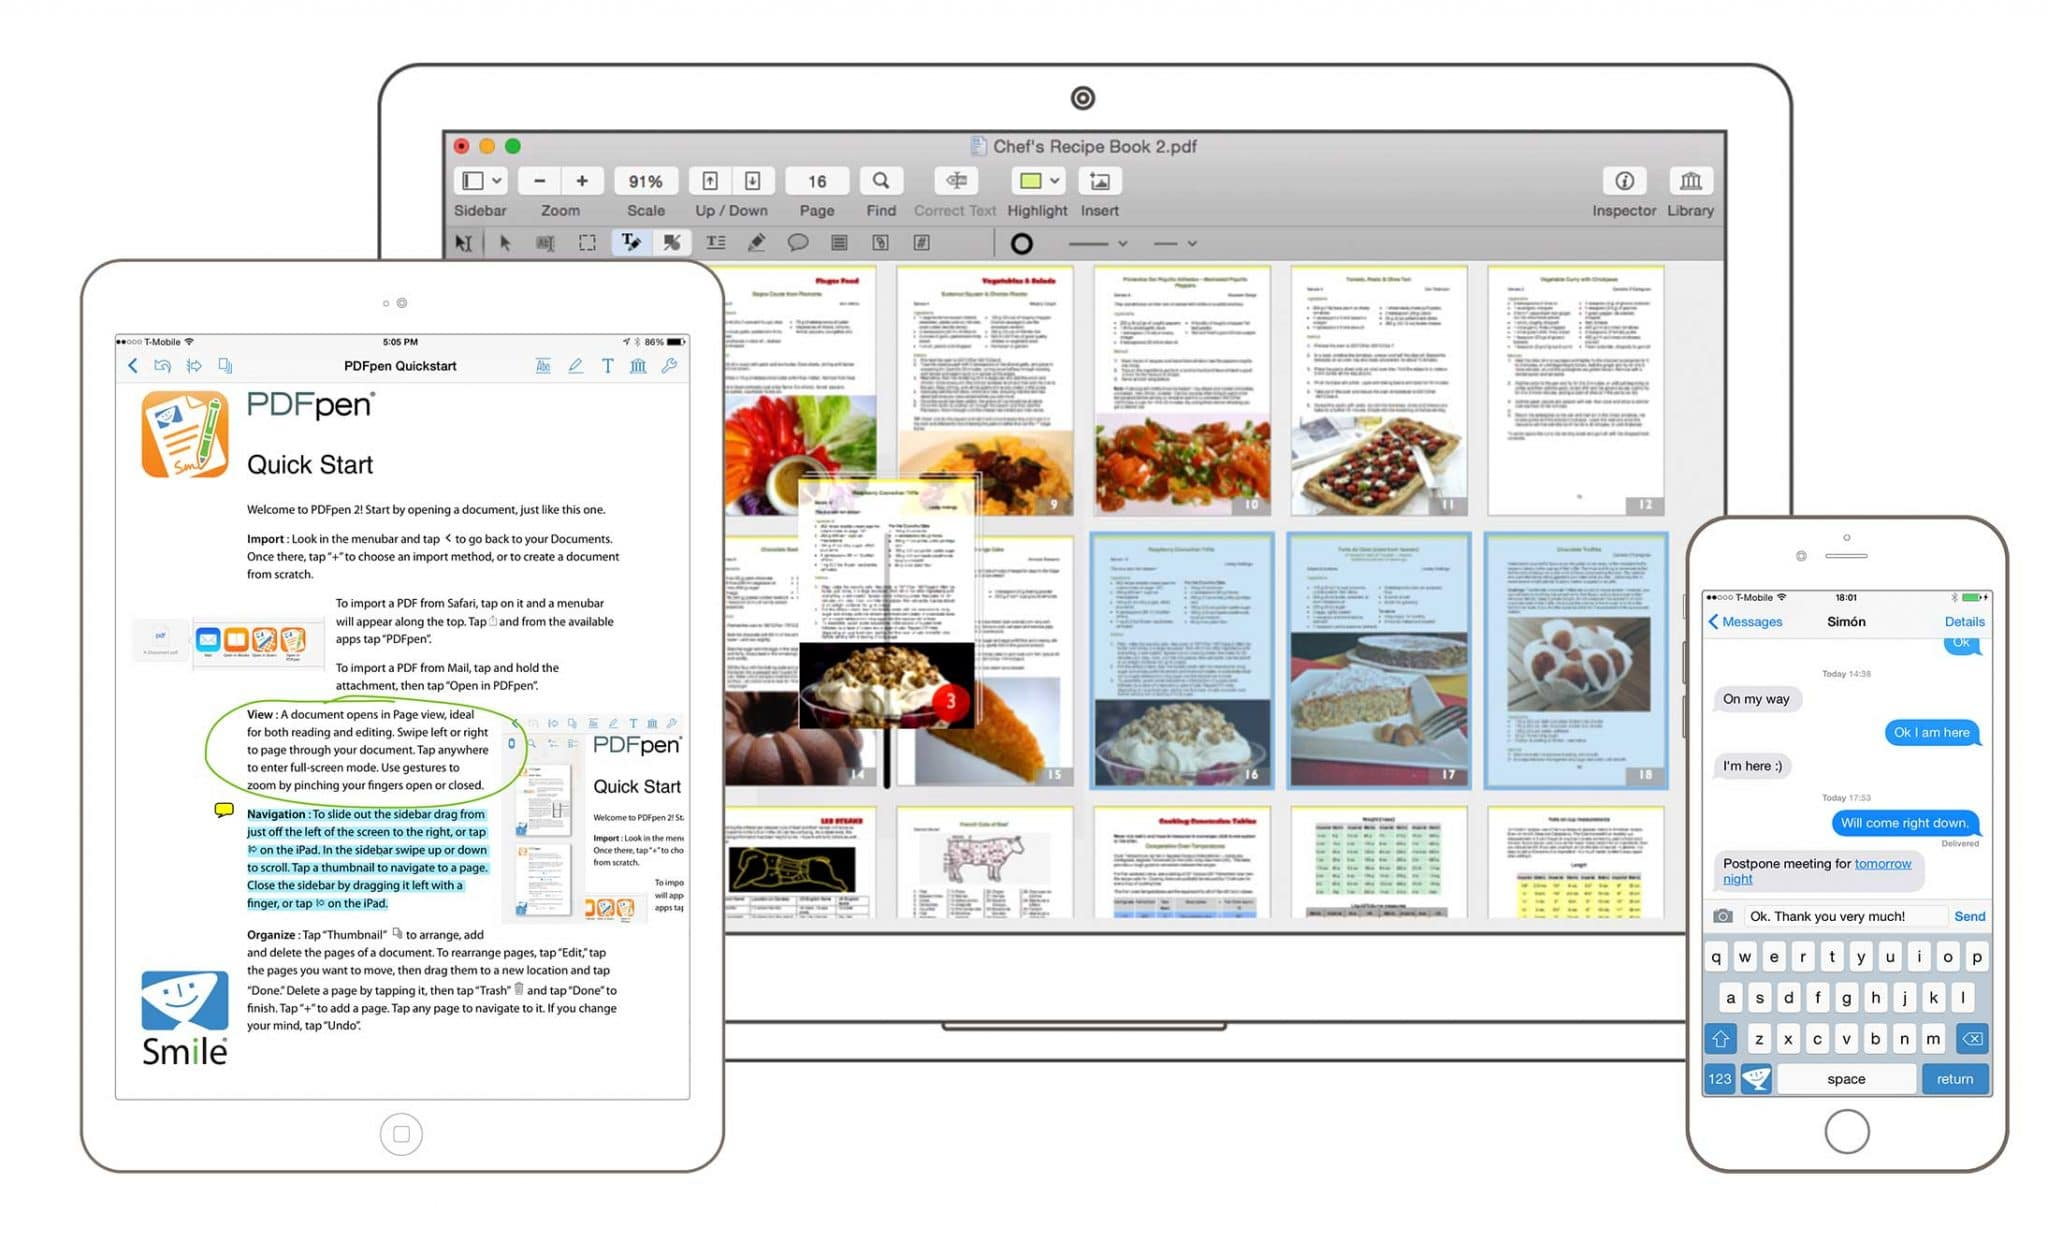 Download PDFpenPro - Mac PDF Editor | Smile Software